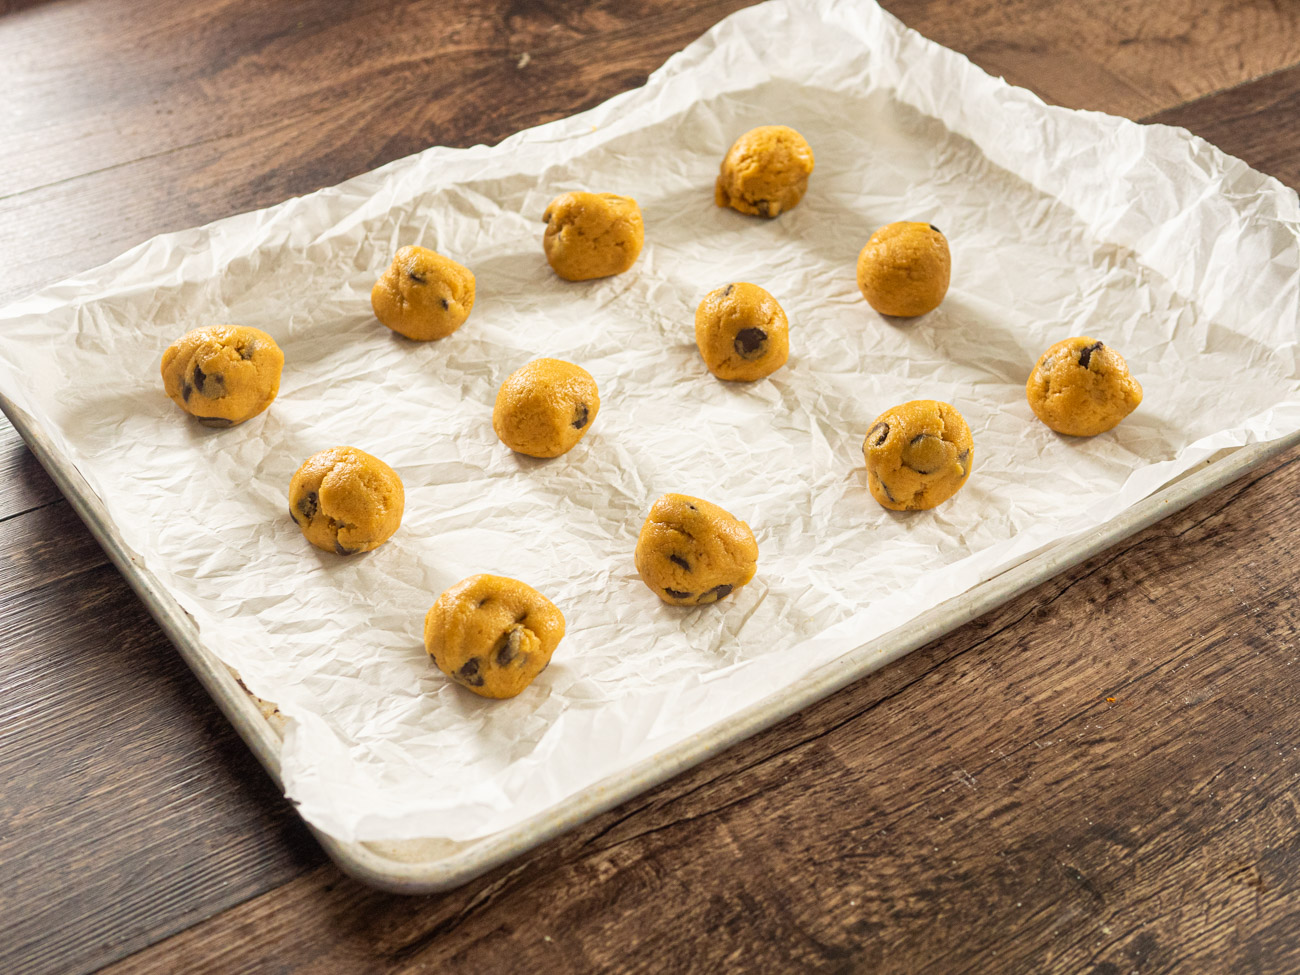 Roll into 1-inch balls or use a small ice cream scoop. Place cookies at least one inch apart on baking sheet.